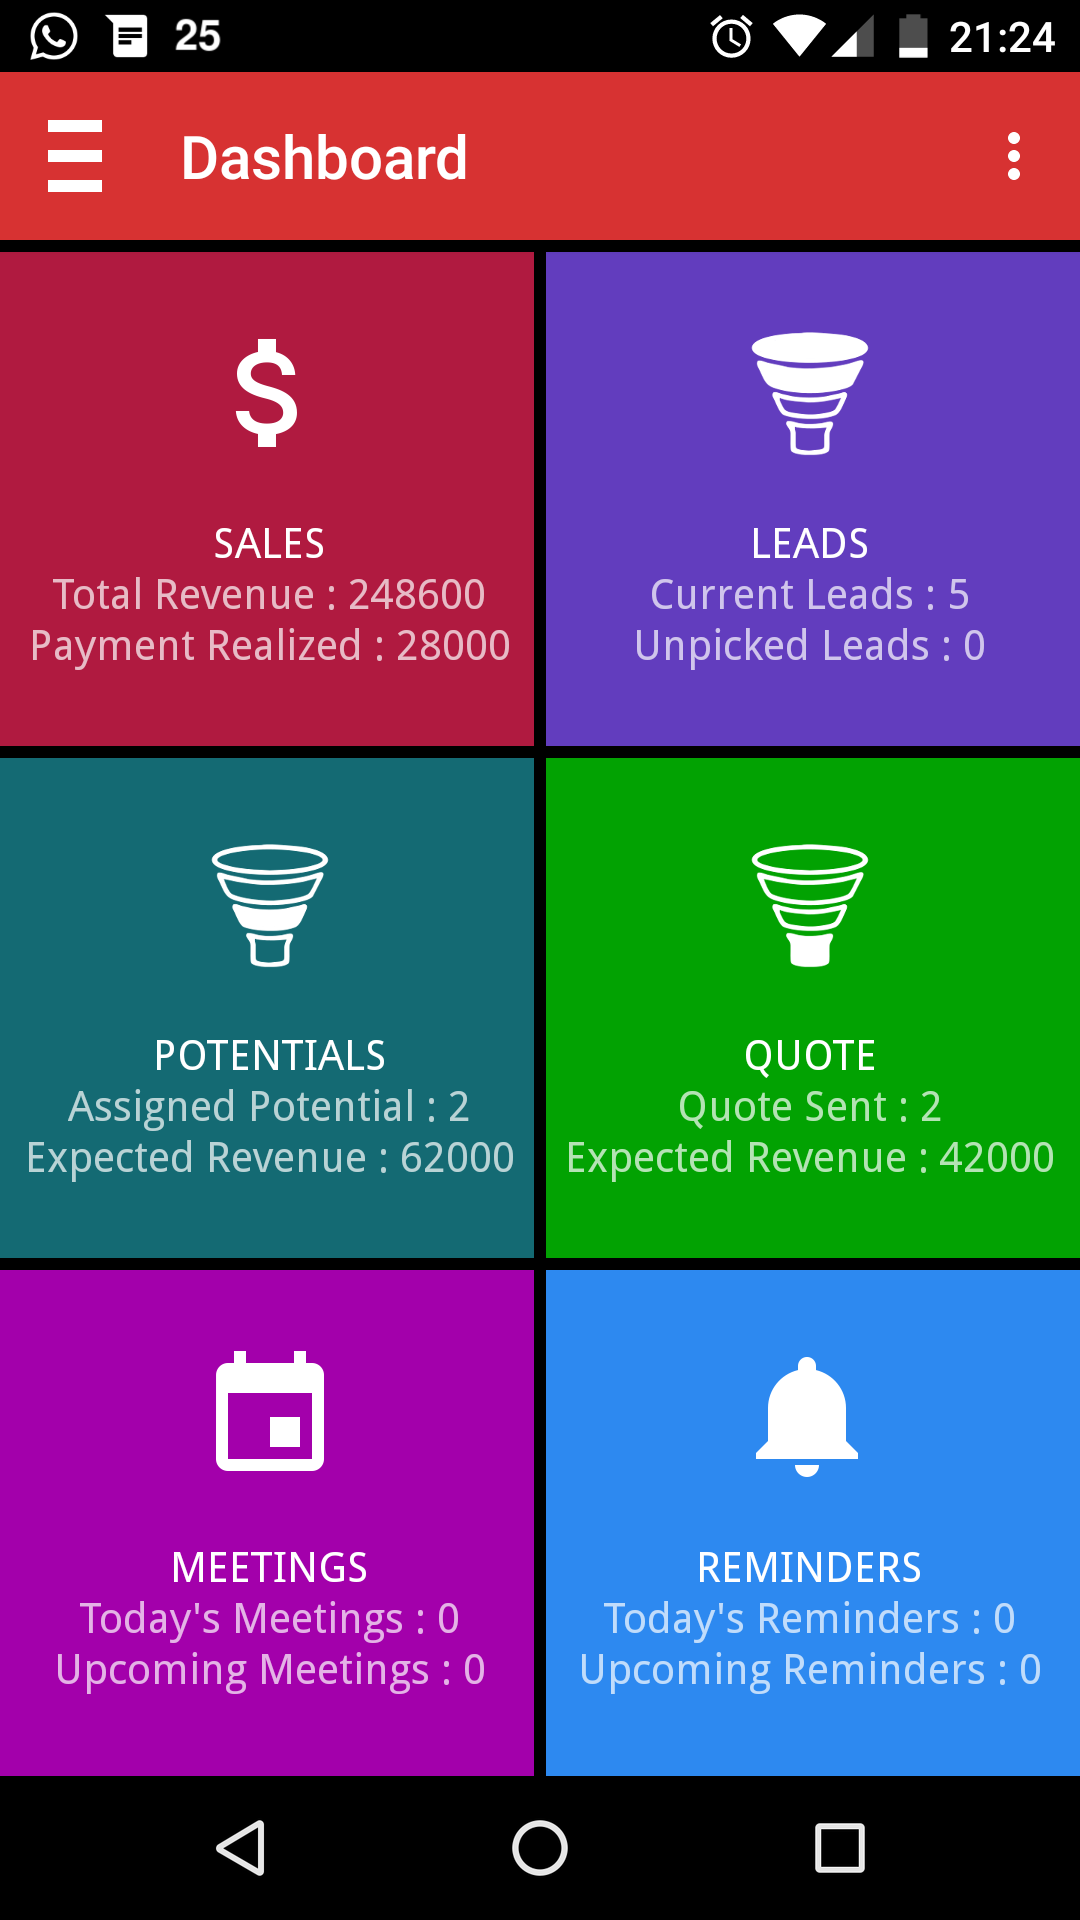 SOCAmps Mobile CRM Dashboard